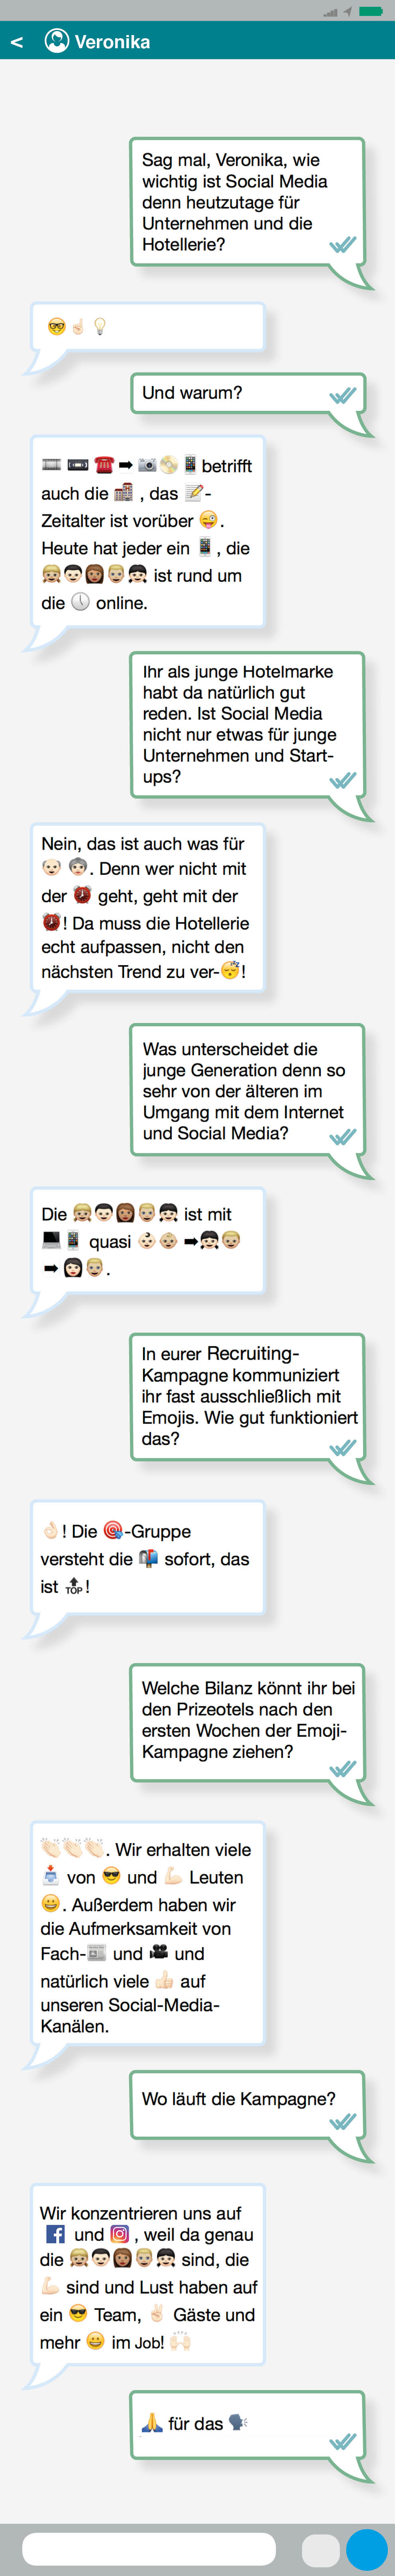 Interview in Whatsapp-Optik über die Generation Y, Emojis, Social Media und die Prizeotel-Rekrutierungskampagne.